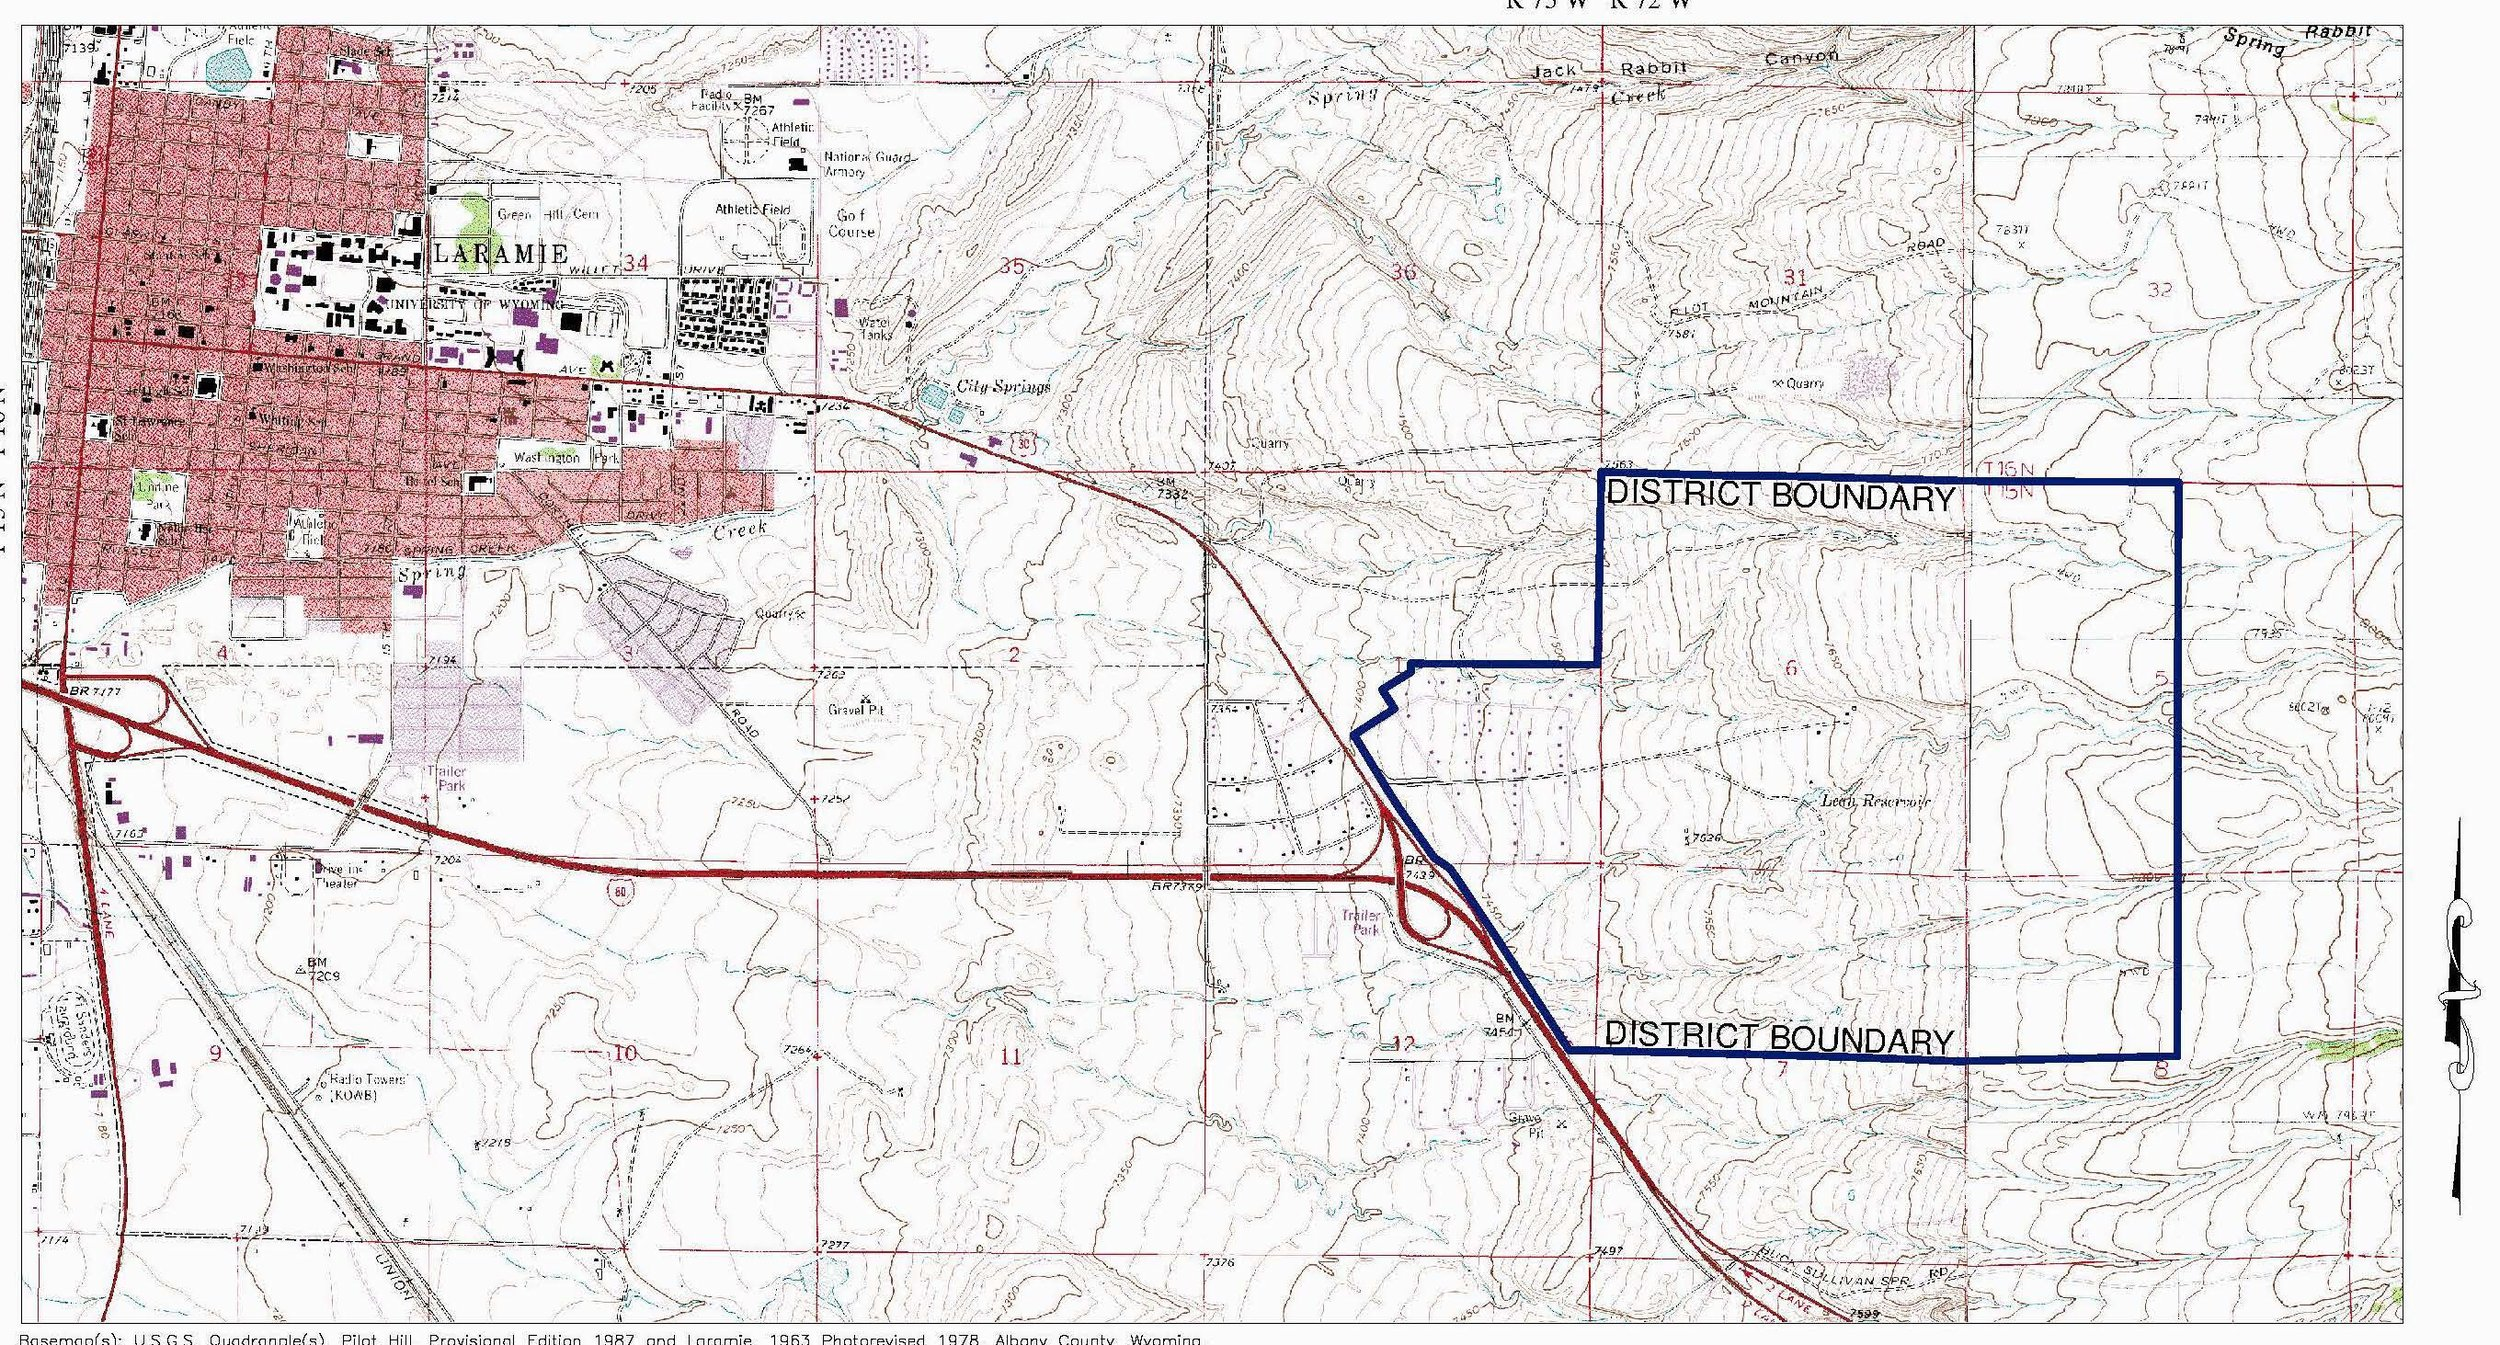 Sherman Hill District Boundary - Click to Enlarge or Download